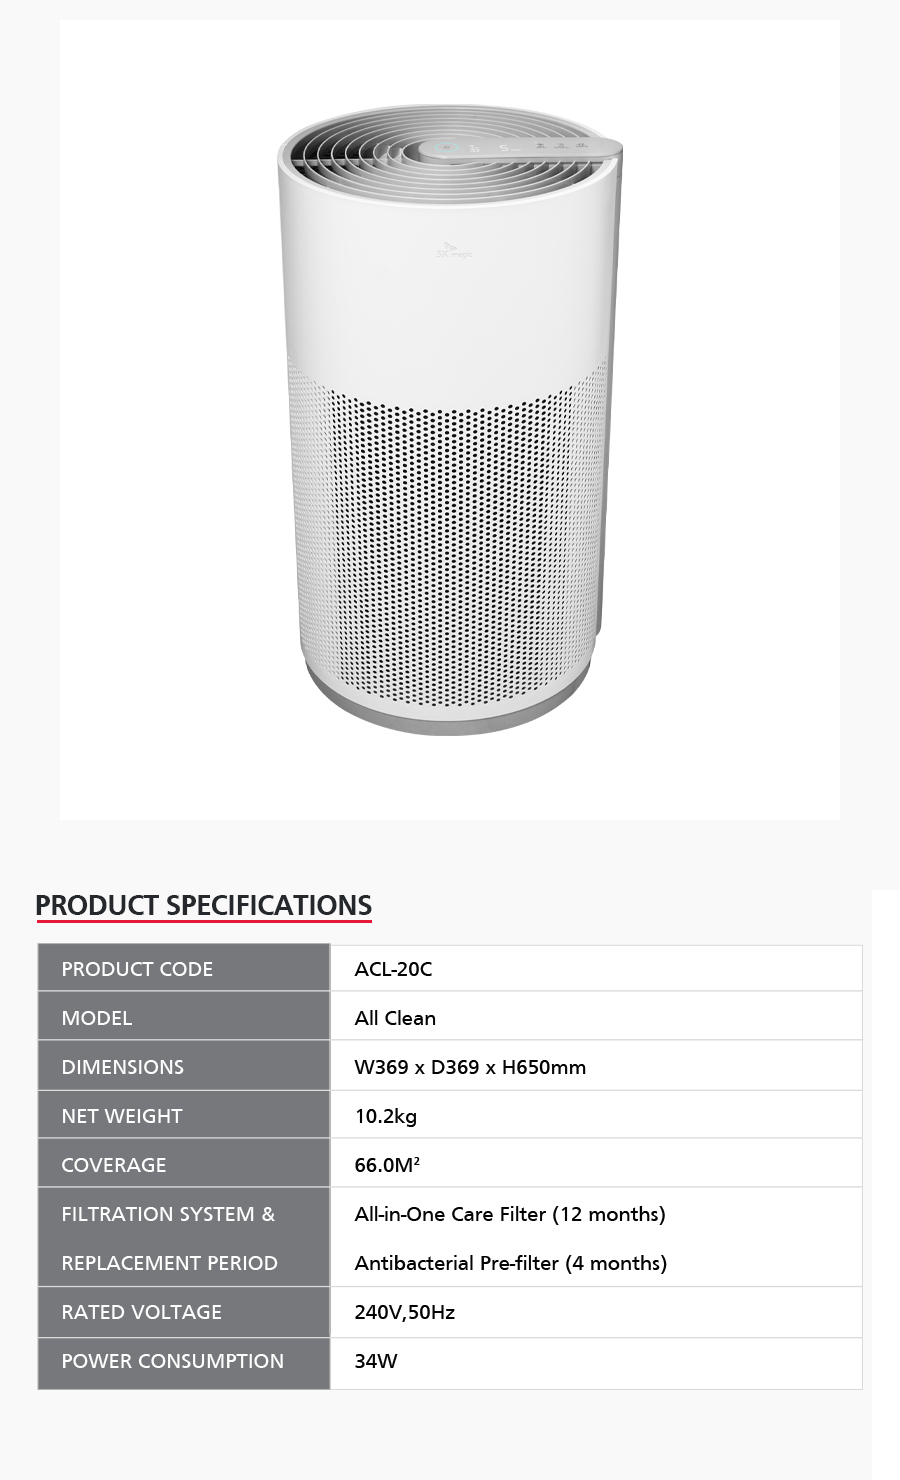 Product Specifications SK magic All Clean Air Purifier ACL-20C All-in-One Care Filter (12 months) Antibacterial Pre-filter (4 months)